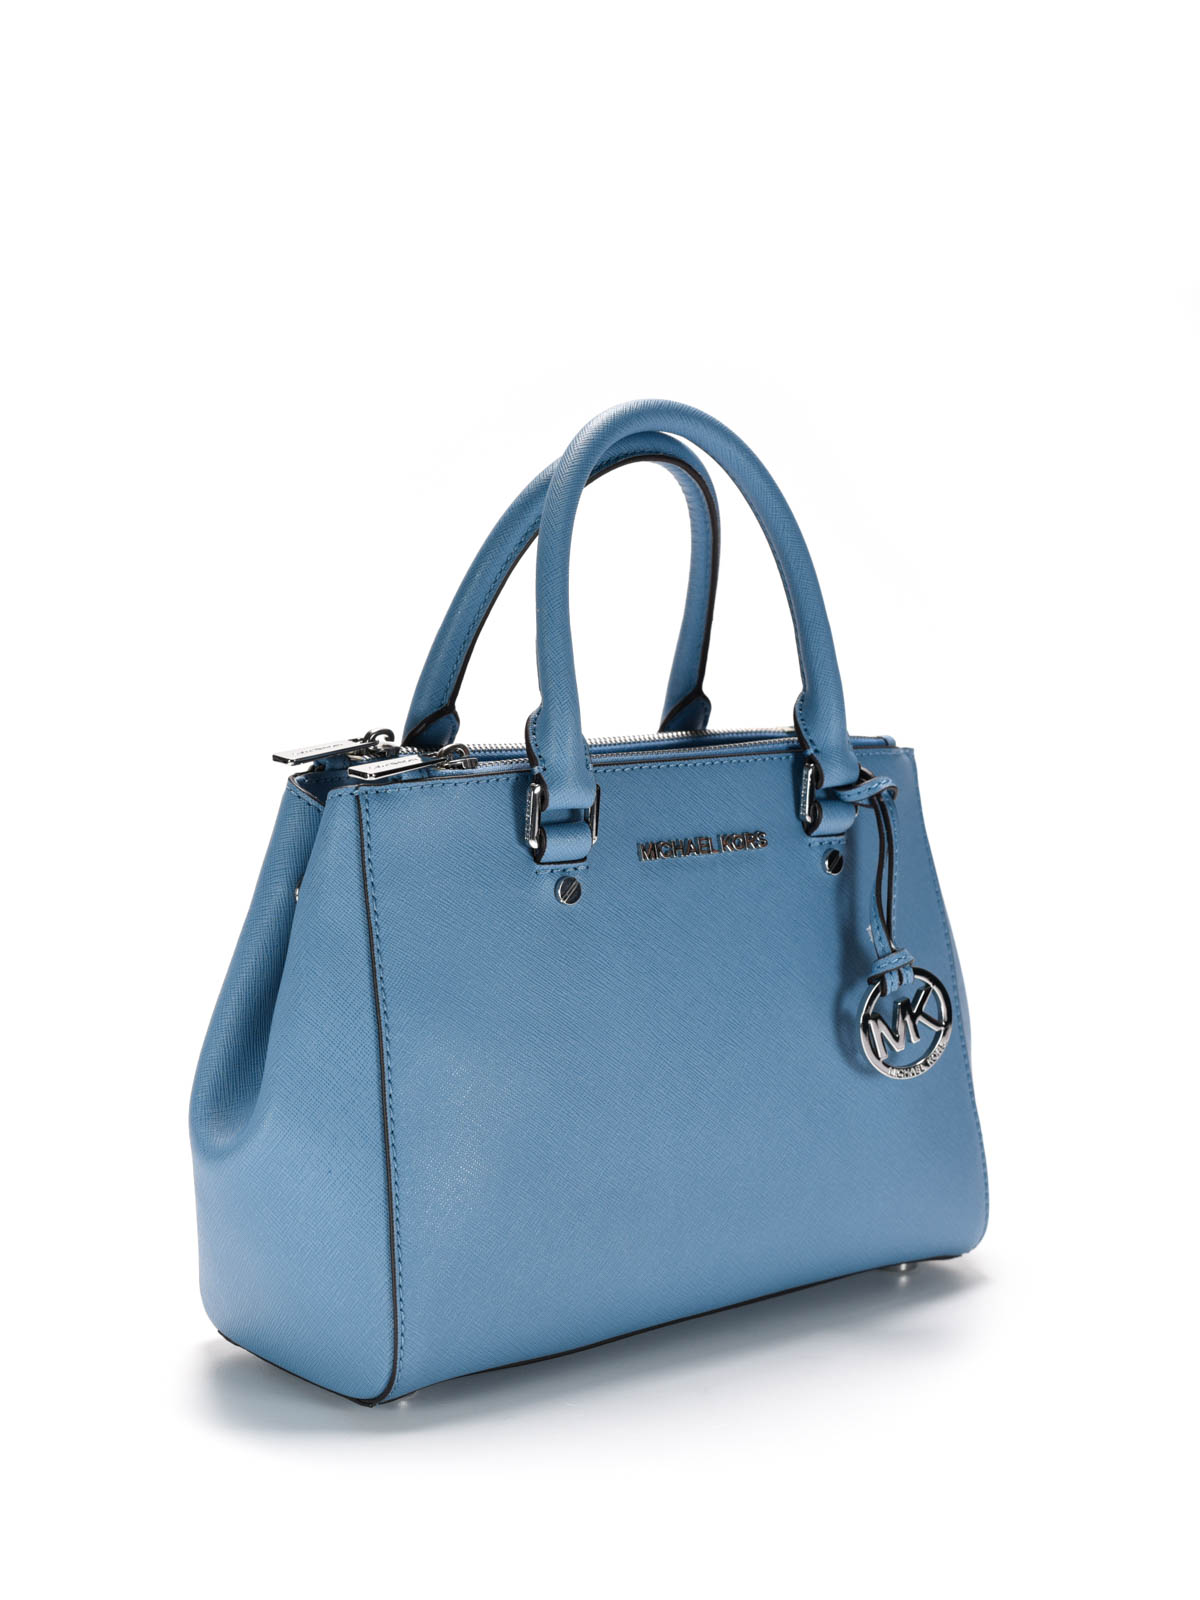 ffab33ac7a64 Michael Kors - Sutton Saffiano leather tote - totes bags - 30F4SSUS5L